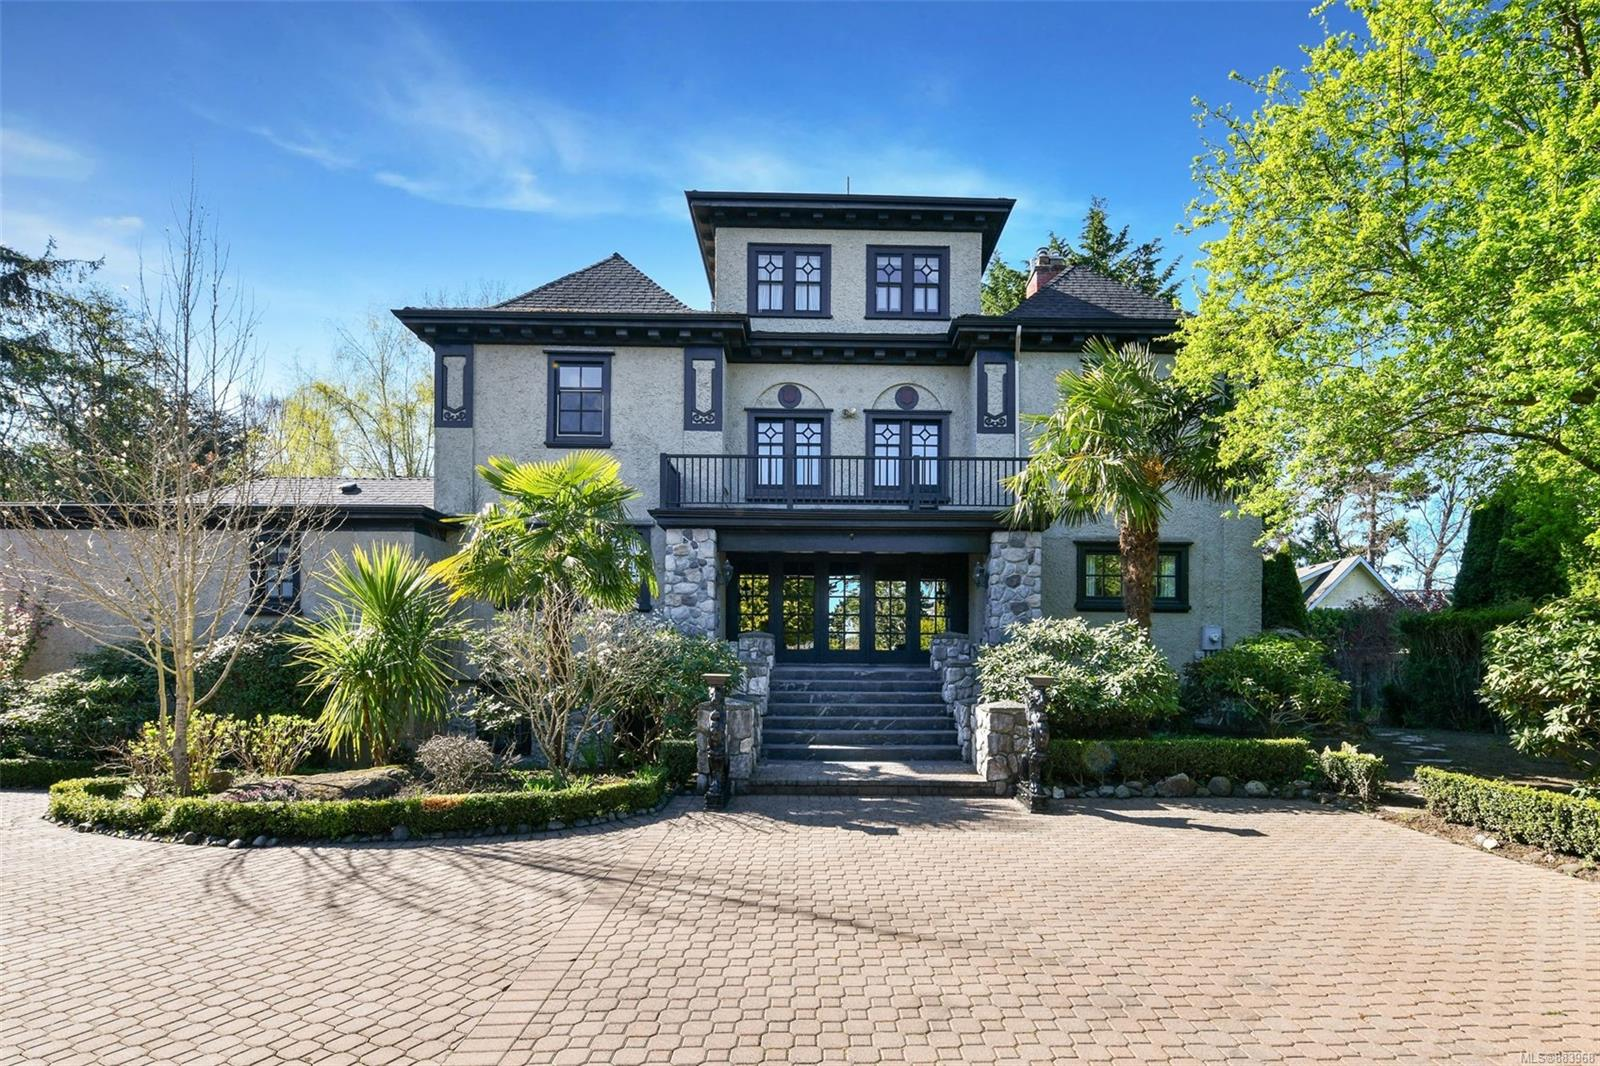 Rare Opportunity to acquire the South Oak Bay's most impressive residences designed and built by renowned Francis Rattenbury, the architect of BC Legislative building and The Empress, Located at the north side of Victoria Golf Course. A Great Setting Looking Over The Victoria Golf Course. Continuously upgraded and well maintained, in-floor heat, granite kitchen with hugh island, hi-efficiency boiler, windows, gas heaters and so much details. Luxury wallpapers for each individual rooms. Three balconies with great views on all sides. The gorgeous  living & dining rooms, high ceilings, cozy library, second sitting area & solarium, oversized Master suite with sumptuous 6-piece ensuite....and lots of options for either larger or smaller families! Incredible location on a quiet cul-de-sac, private .61acre property with 3 car garage with a lot of additioanl parking spaces.  Landscaped outdoor oasis around the properties. Best neighbours & neighbourhoods.  Come make this your Dream HOME!